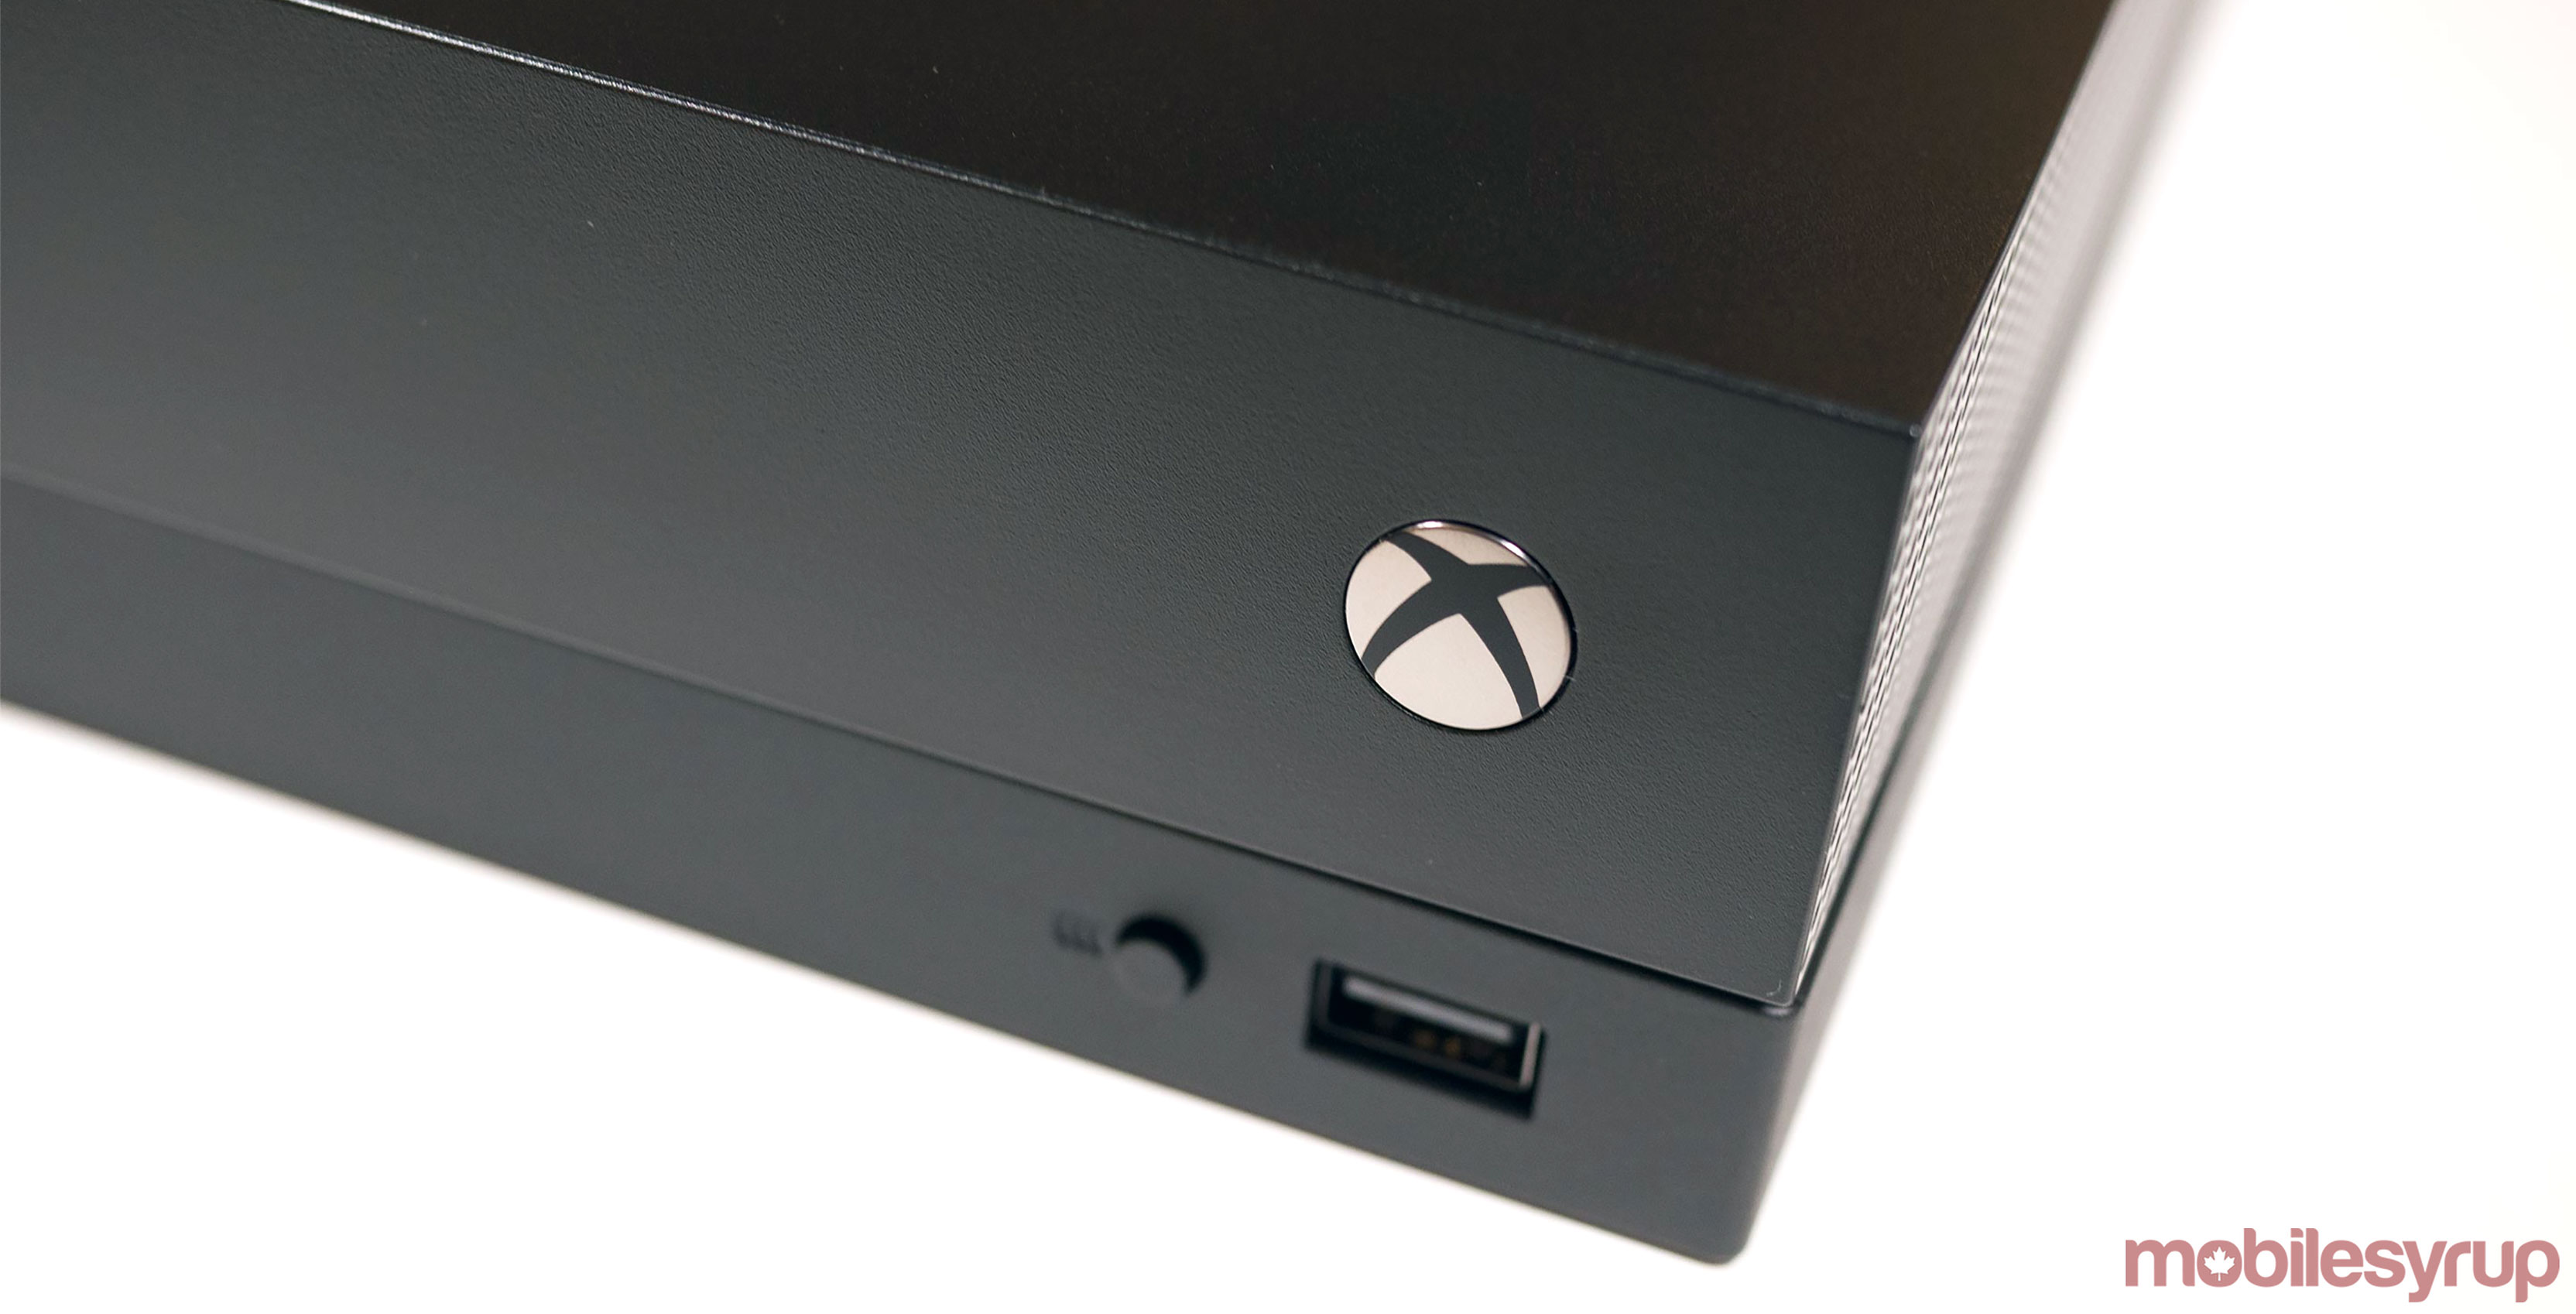 Microsoft's Xbox One spring update loaded with new features